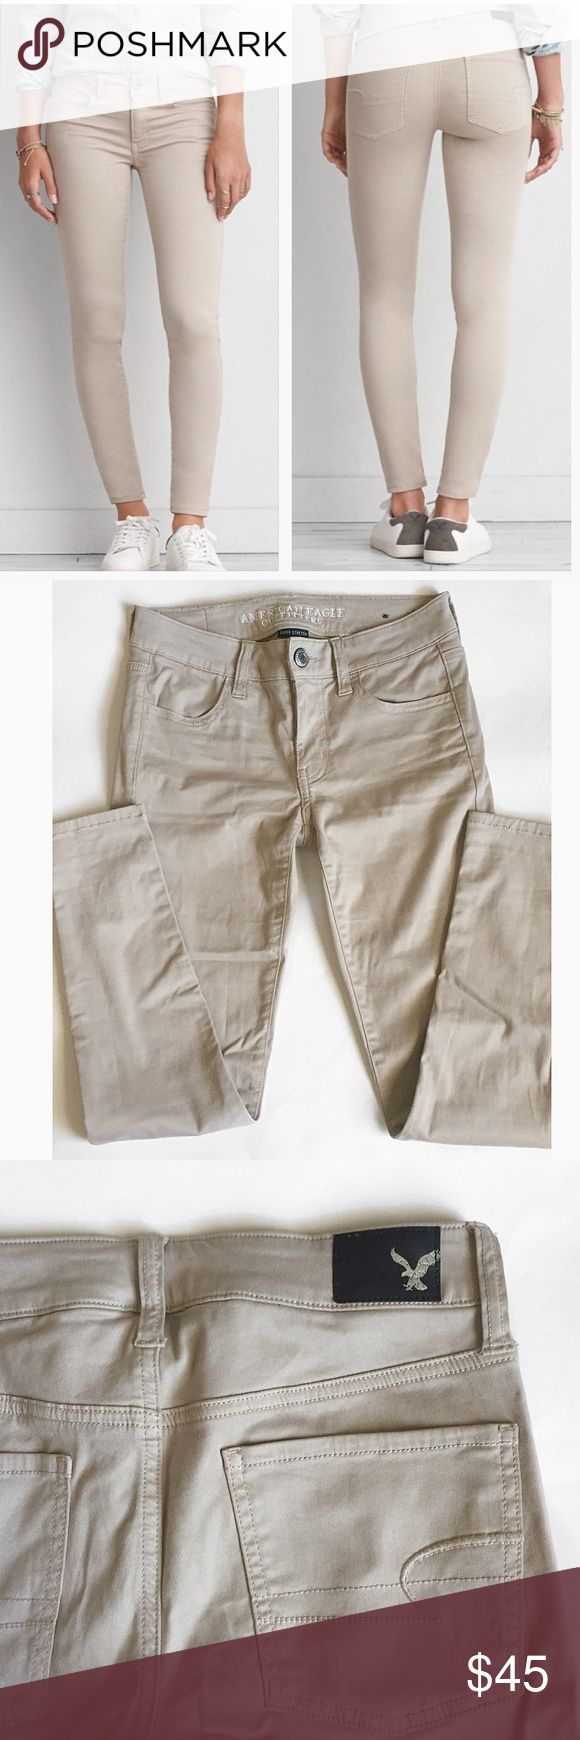 American eagle outfitters khaki jeggings American eagle khaki jeggings. Super soft and comfy. In practically new condition. Only worn a couple times. Size 2 short. ❌no trades. American Eagle Outfitters Jeans Skinny